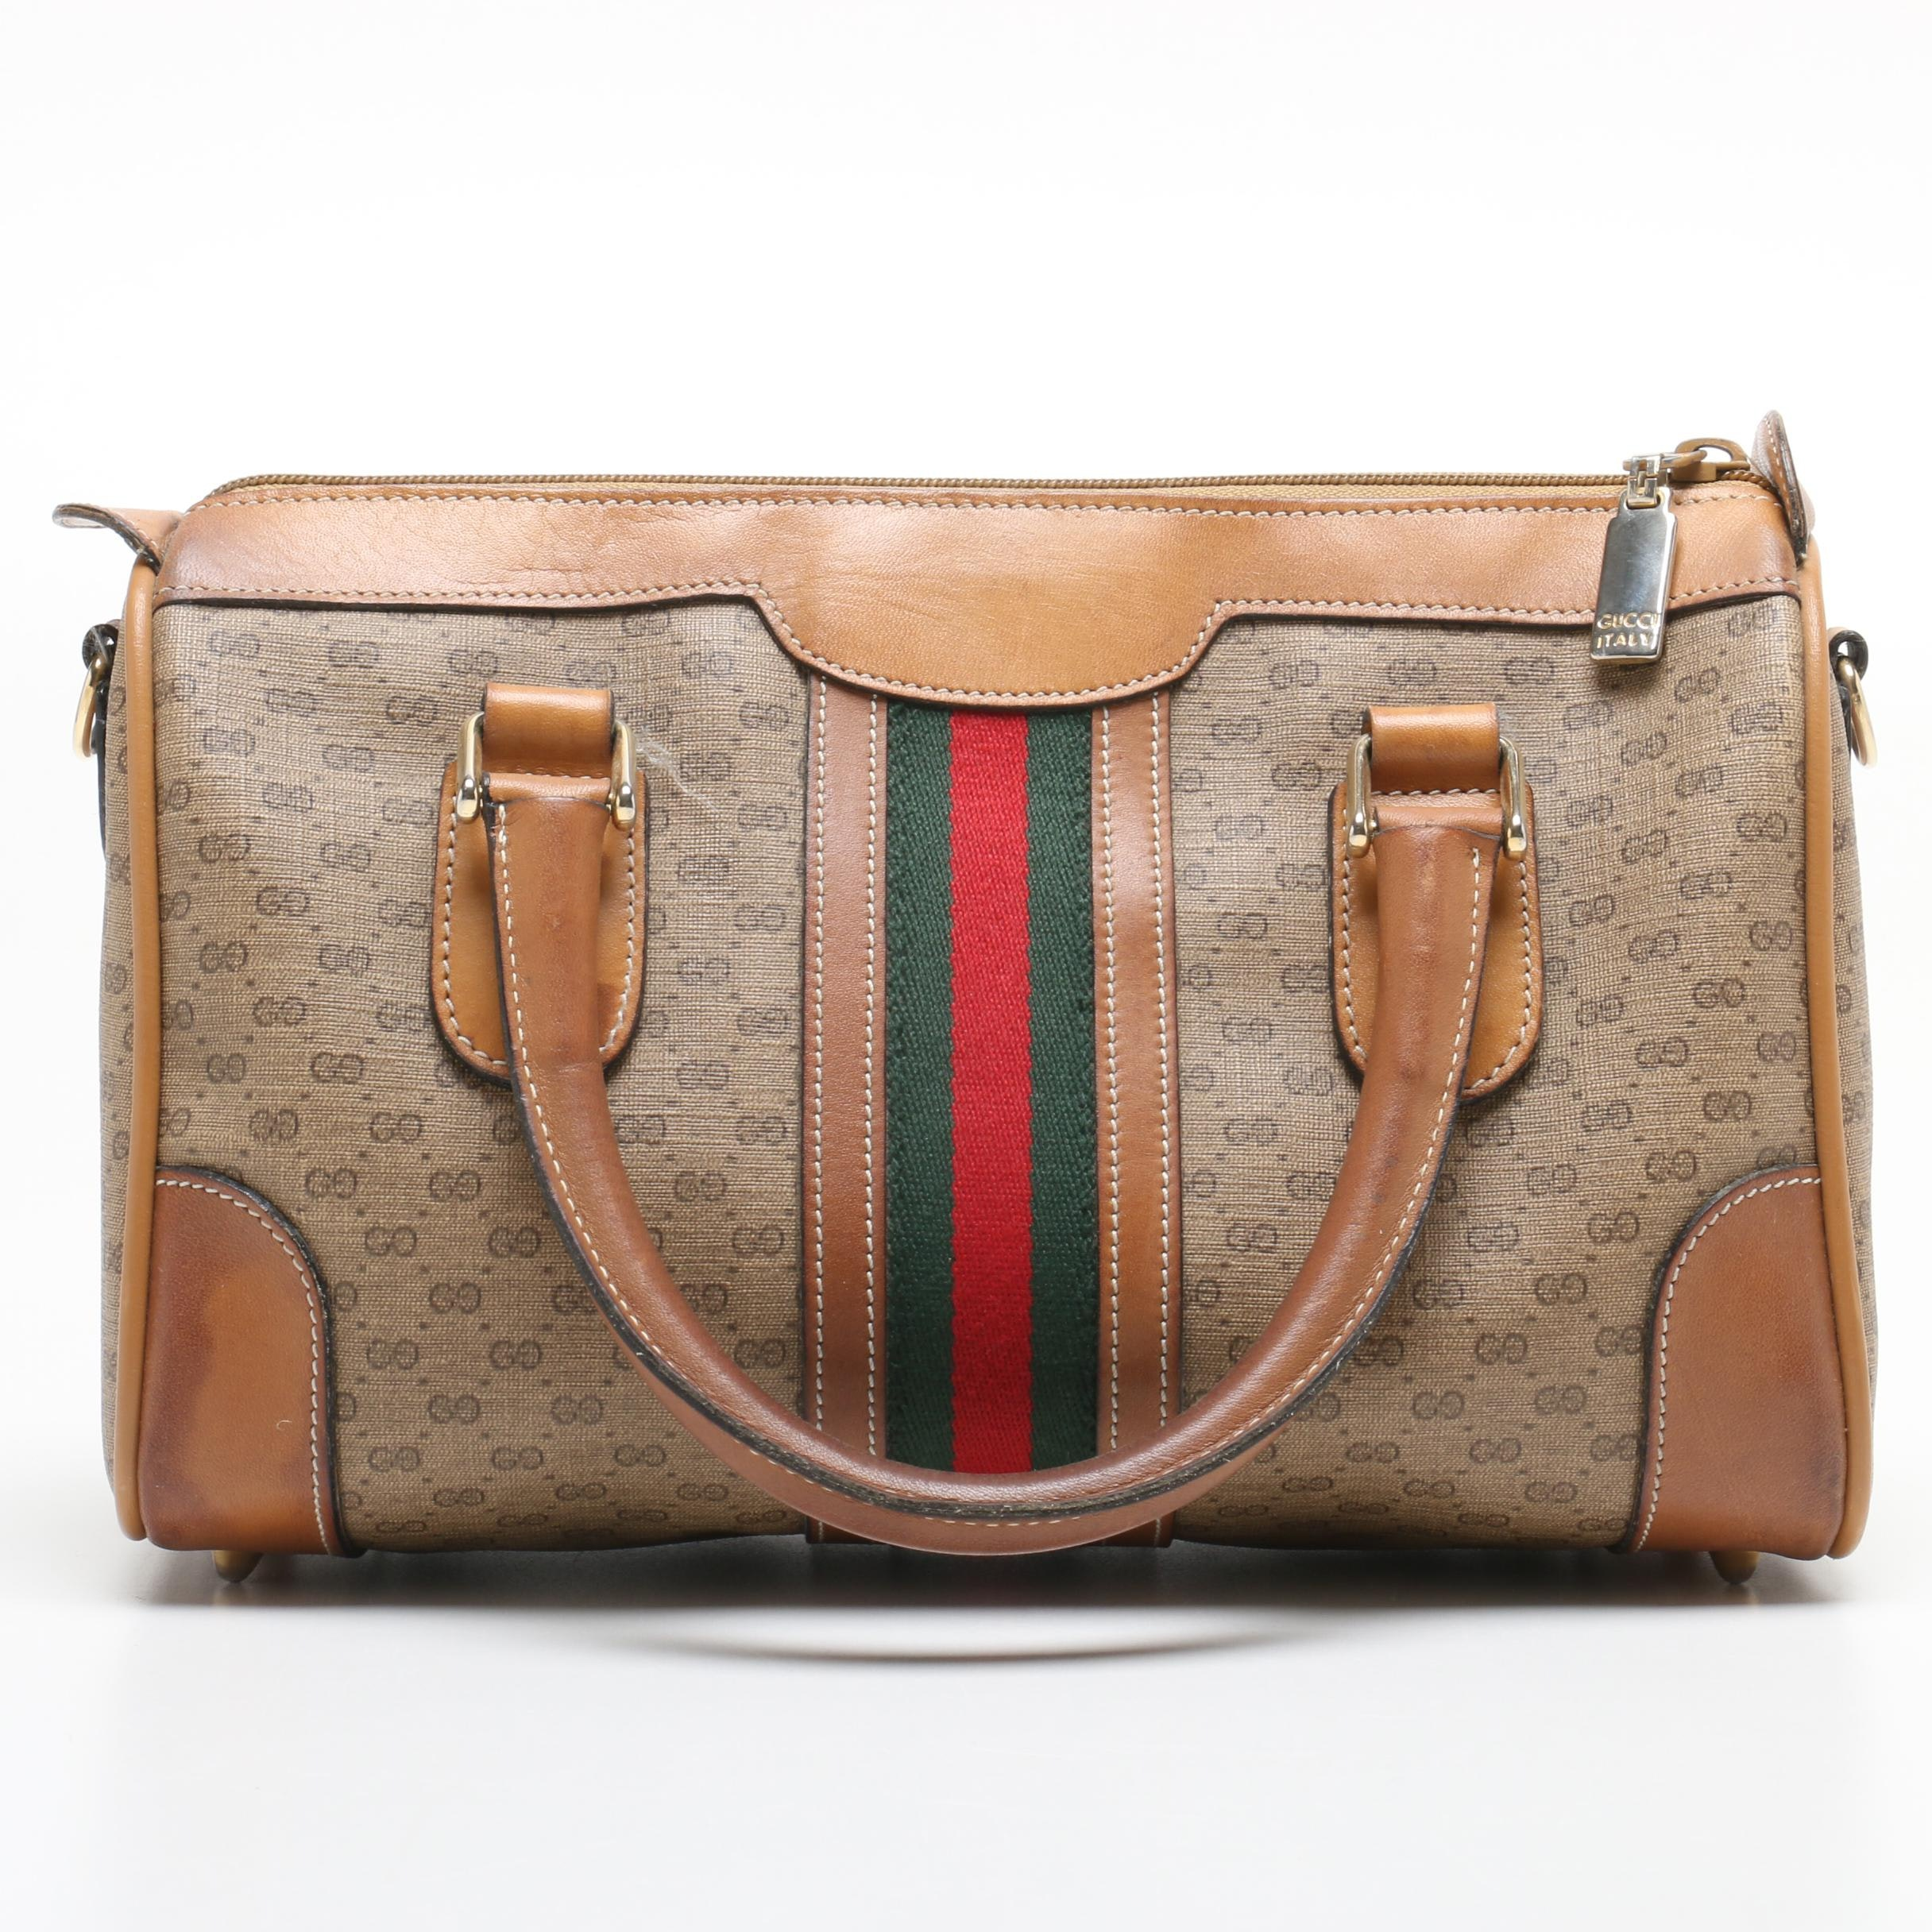 Gucci GG Supreme Canvas Web Stripe Satchel, 1980s Vintage